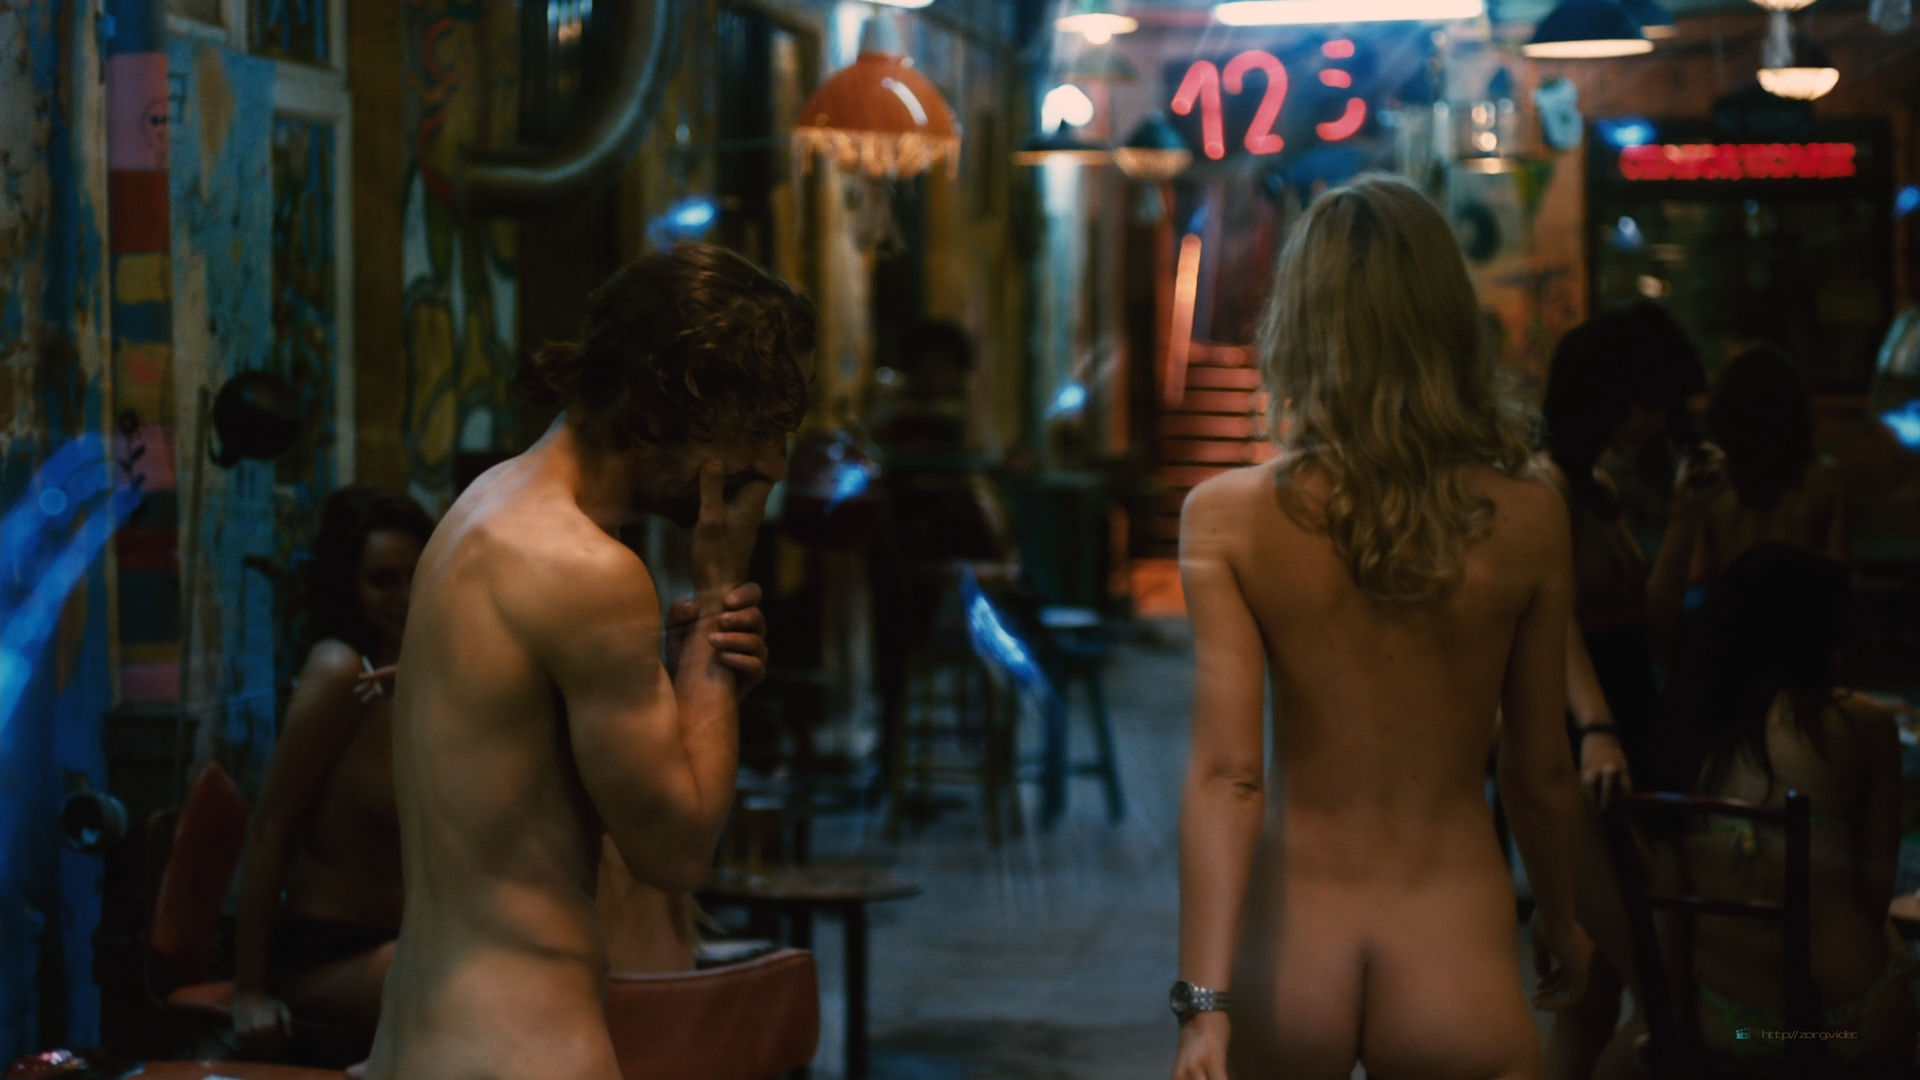 Evan Rachel Wood nude brief topless in sex scene - The Necessary Death of Charlie Countryman (2013) hd1080p BluRay (12)